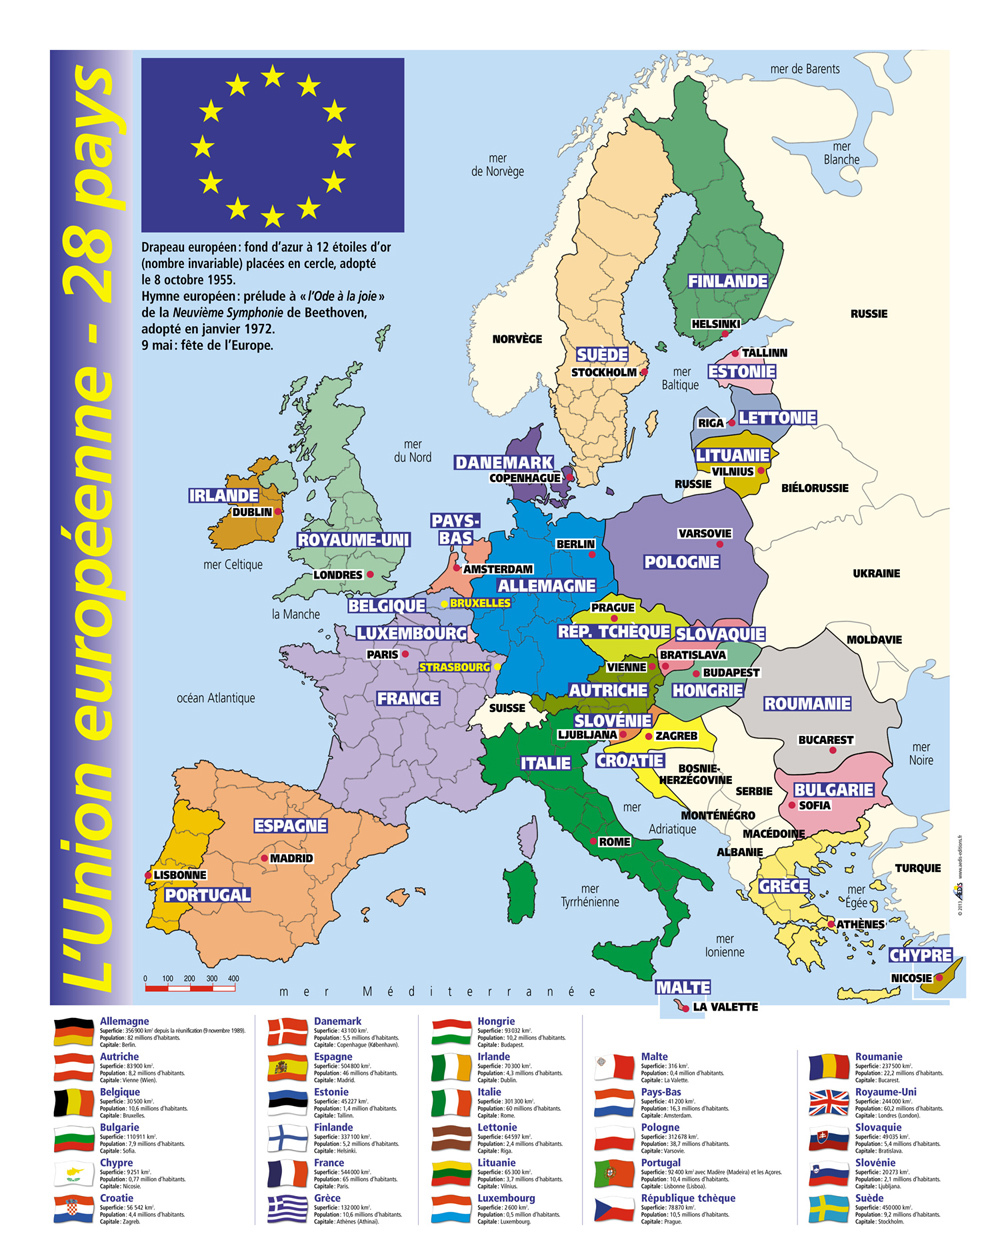 L'EUROPE 27 PAYS